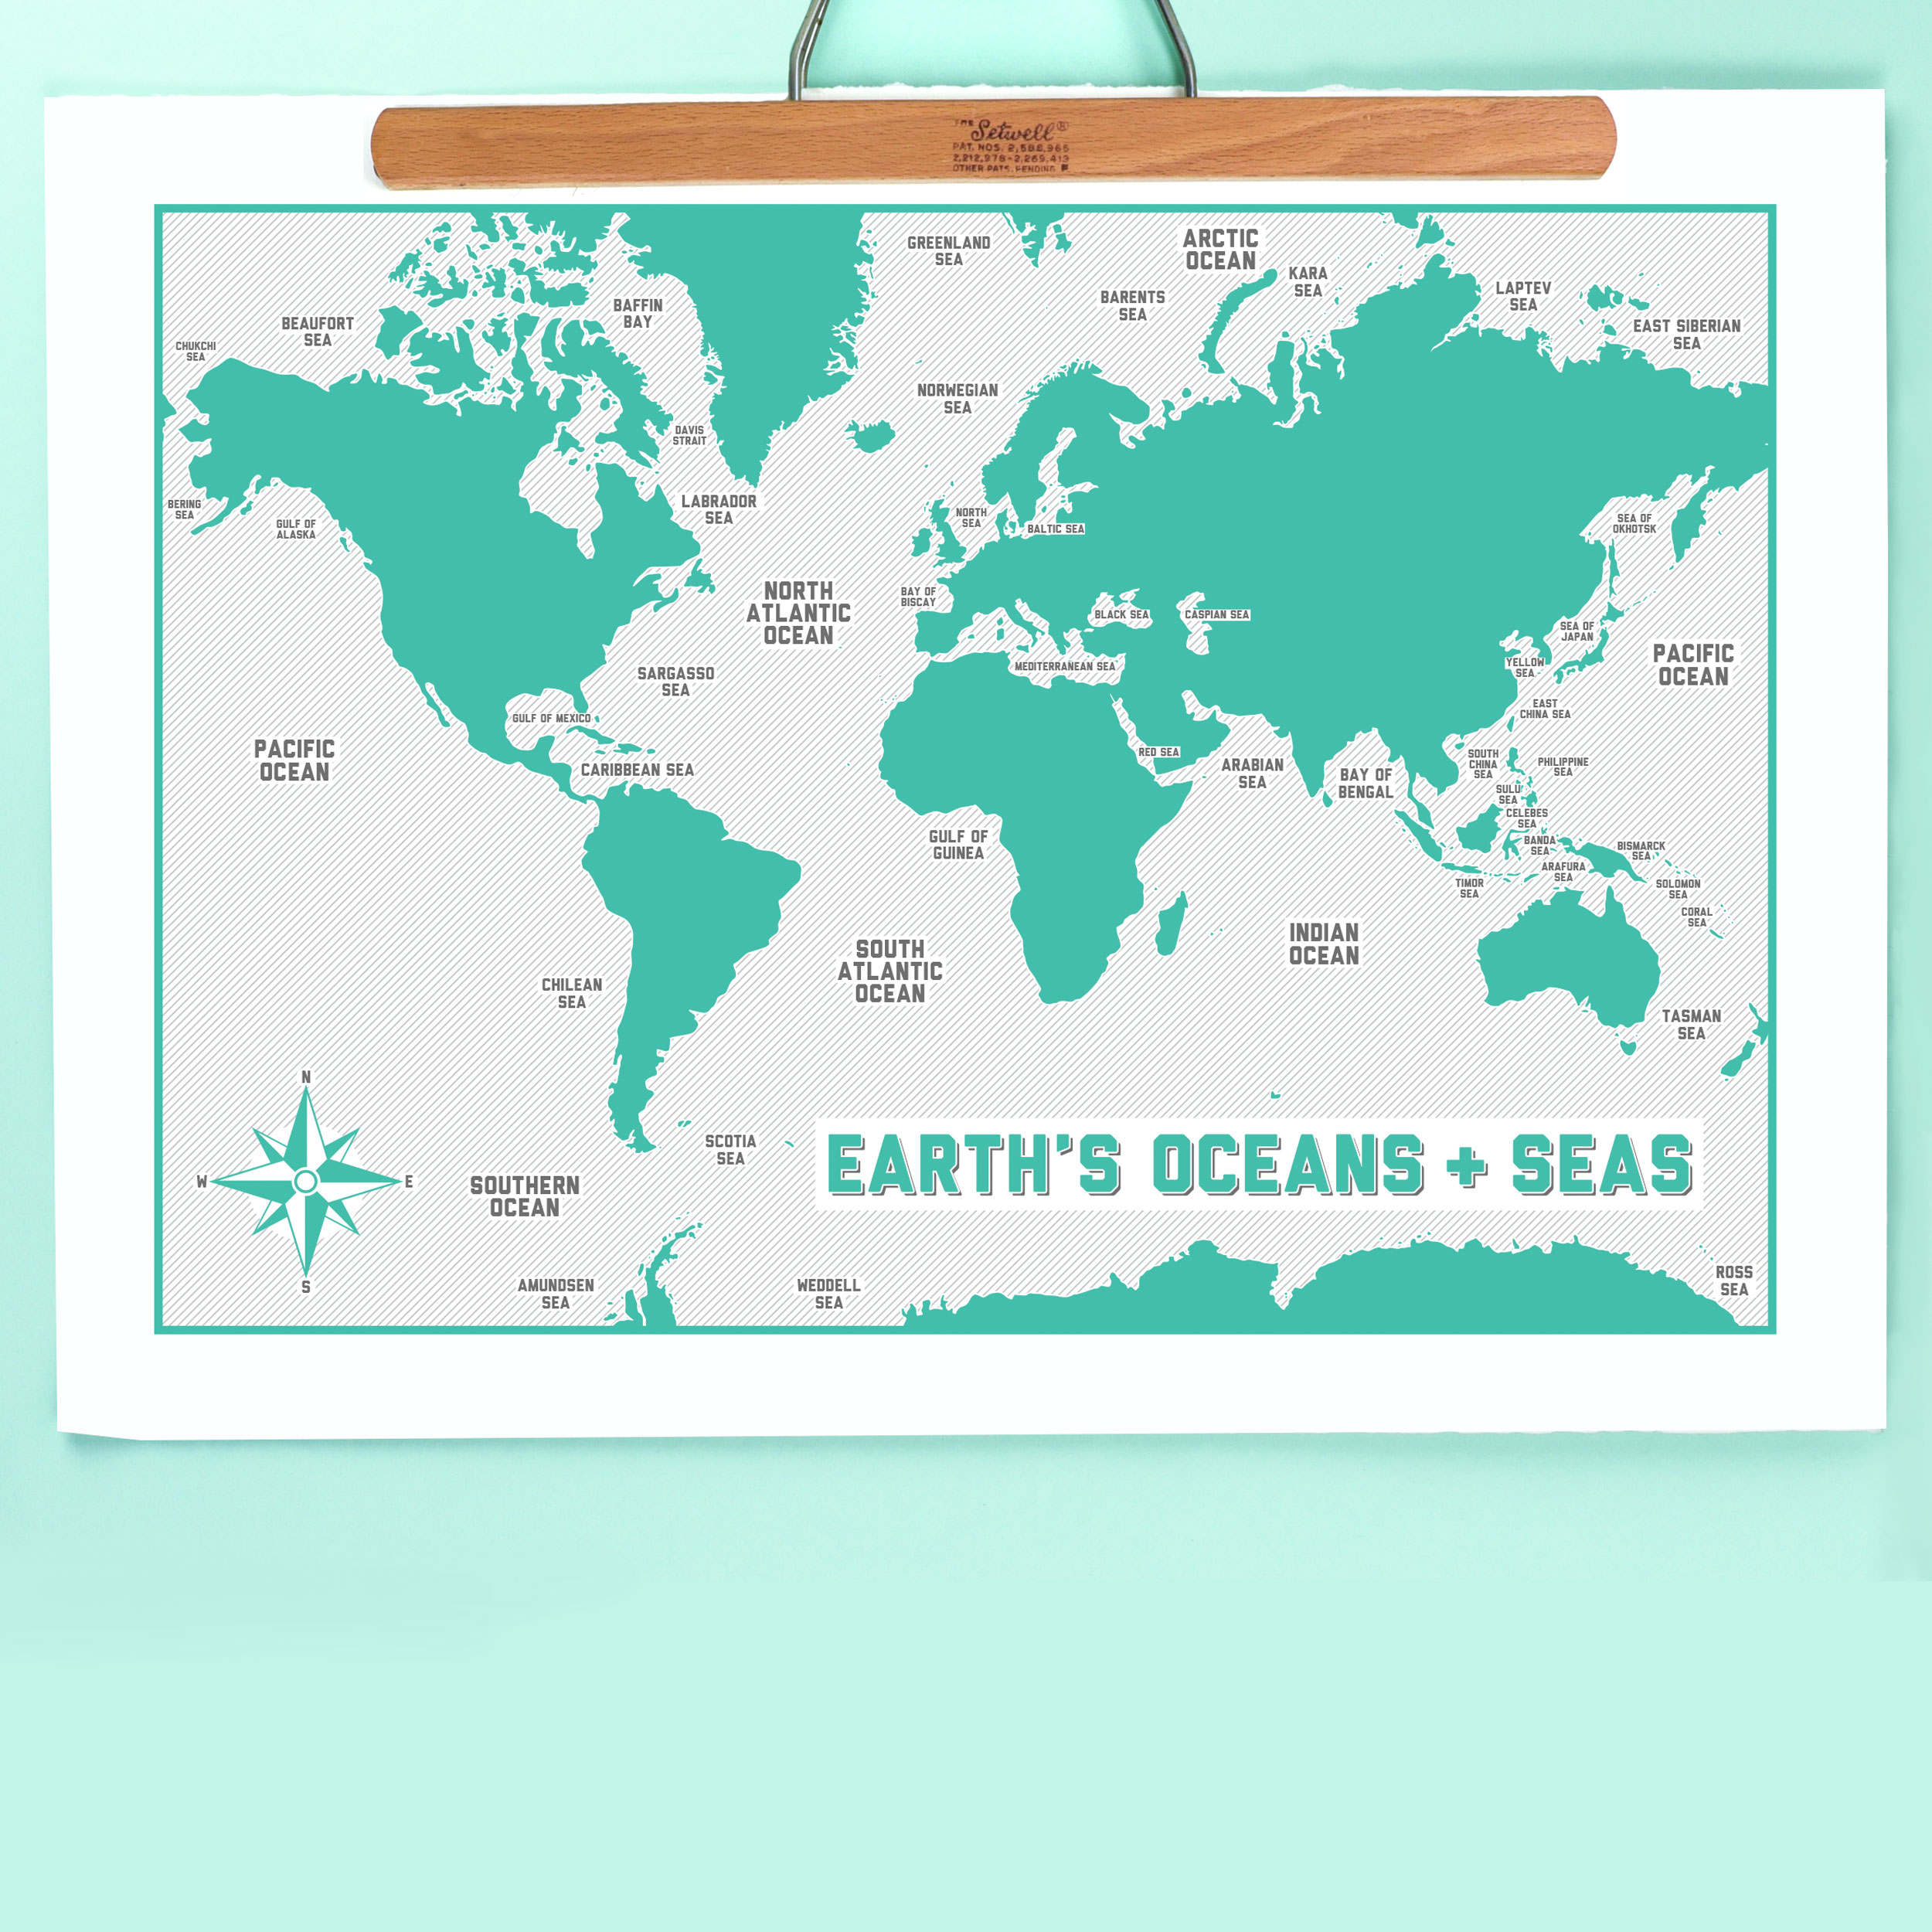 Earth\'s Oceans Print - 2 sizes - Giclée, Gocco & Digital Prints, Life At  Sea, ►Sale Products - The Red Door Gallery - Art Prints, Design Products  and ...